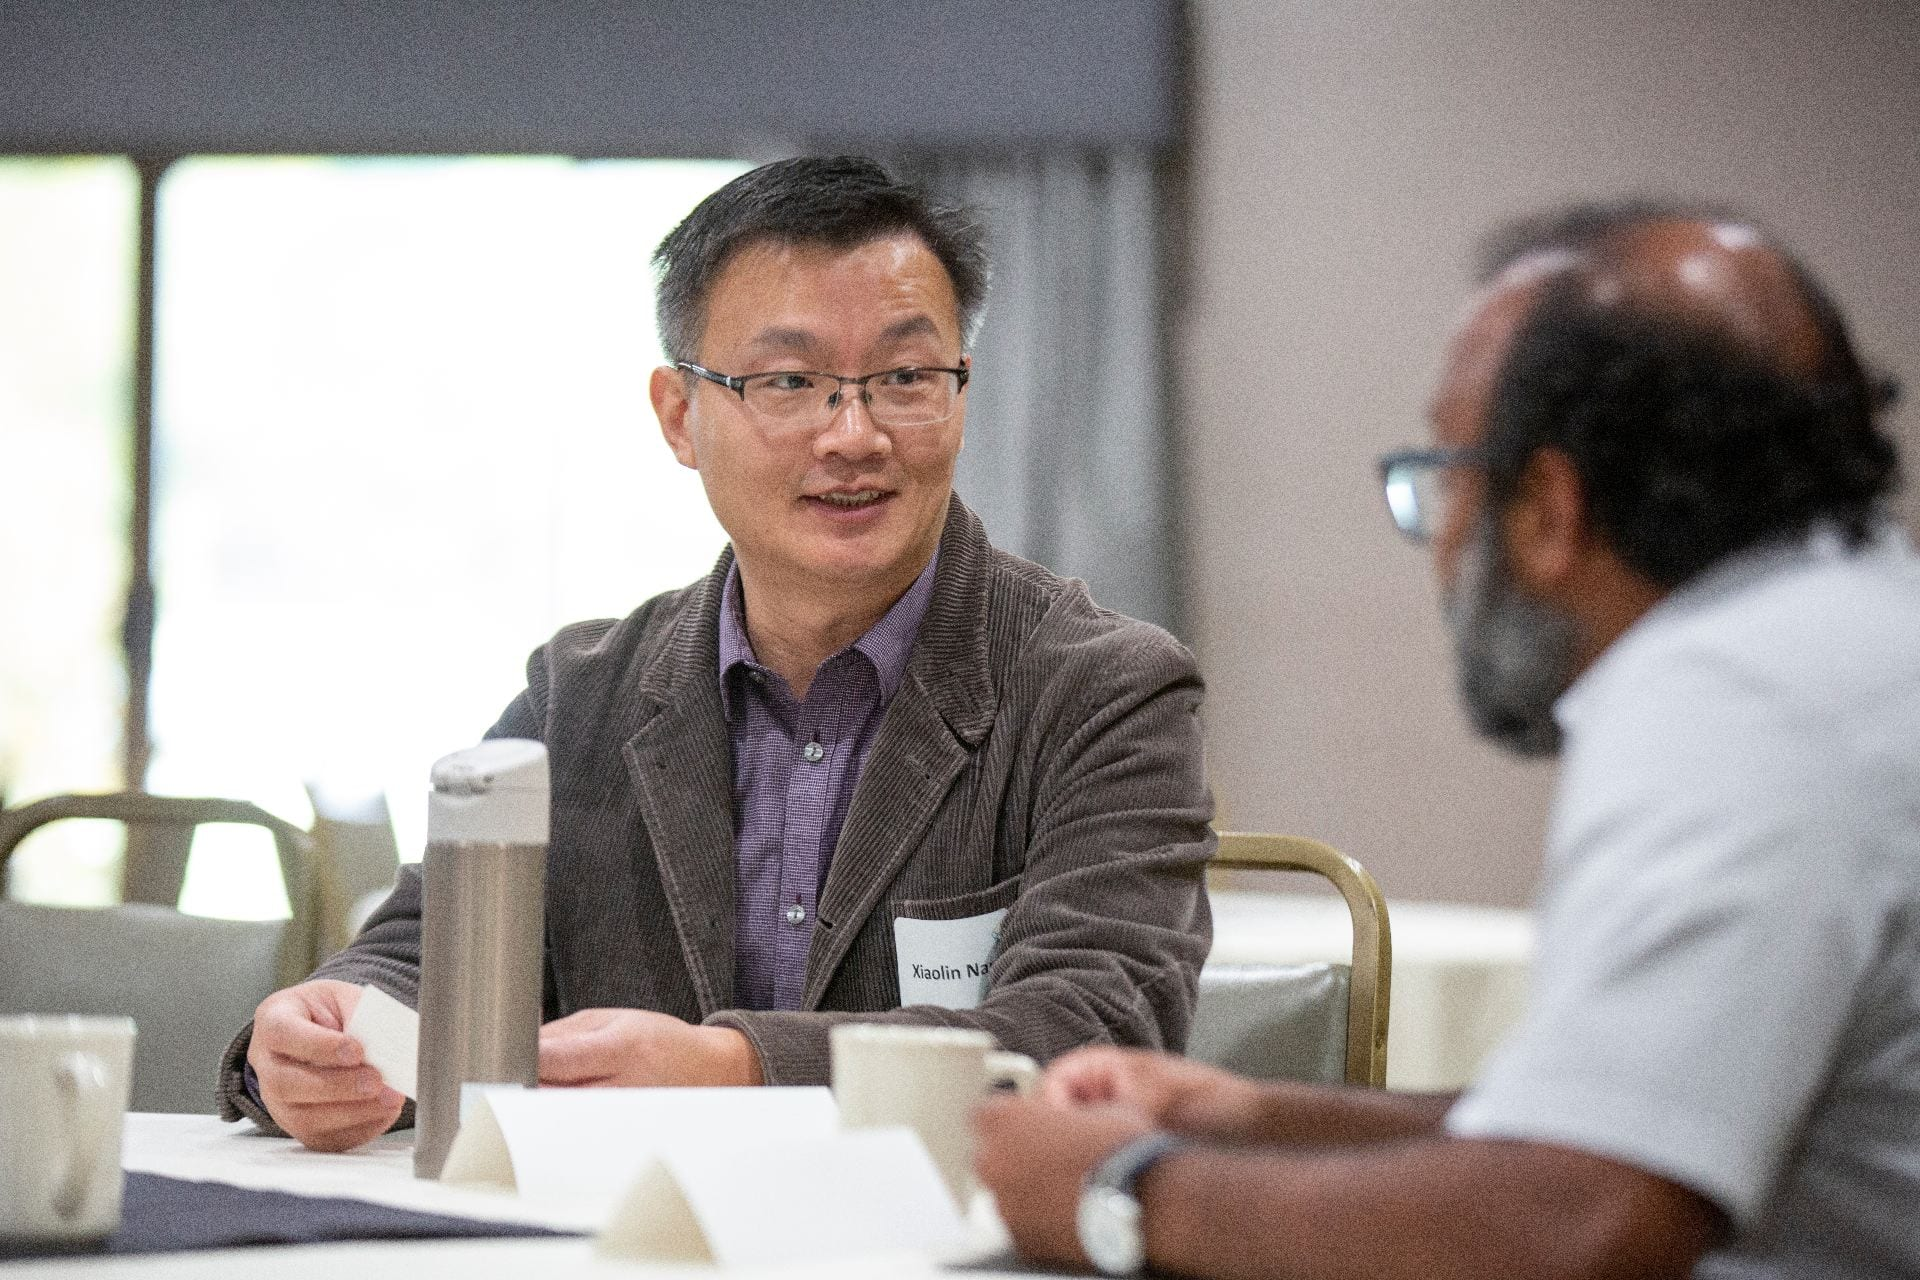 Photo of Xiaolin Nan (left), an assistant professor in the OHSU Department of Biomedical Engineering, and UO's Ramesh Jasti (right), an associate professor in UO's Department of Chemistry and Biochemistry